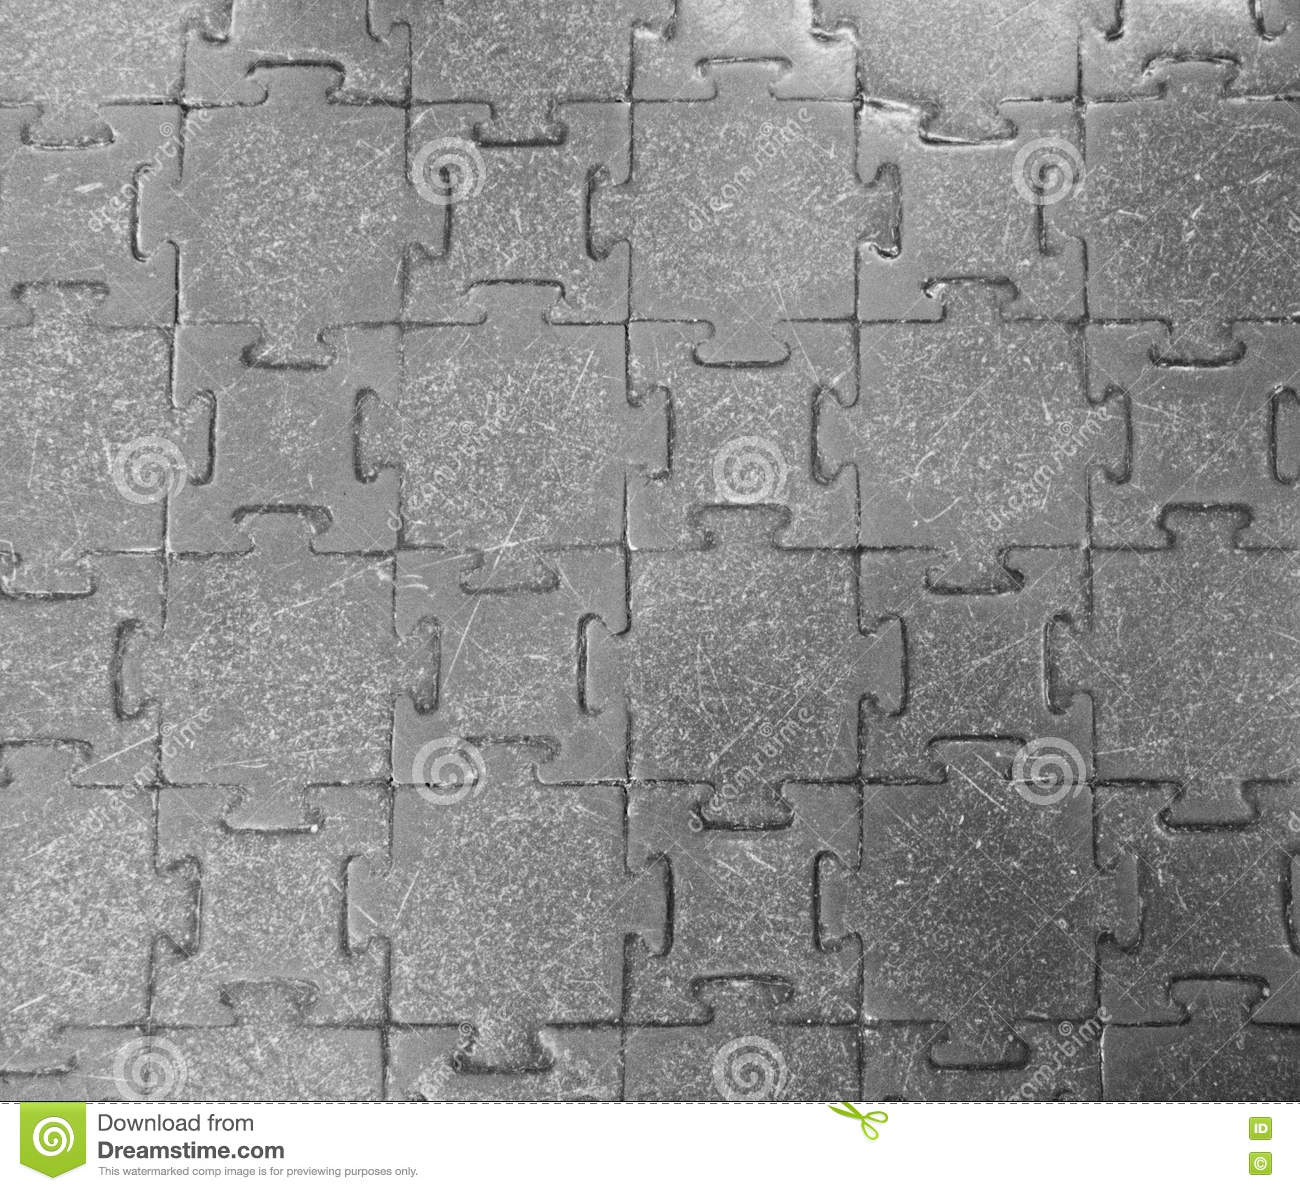 Puzzle tile flooring image collections tile flooring design ideas puzzle tile flooring gallery tile flooring design ideas vintage puzzle tile flooring stock photo image 74076482 dailygadgetfo Choice Image